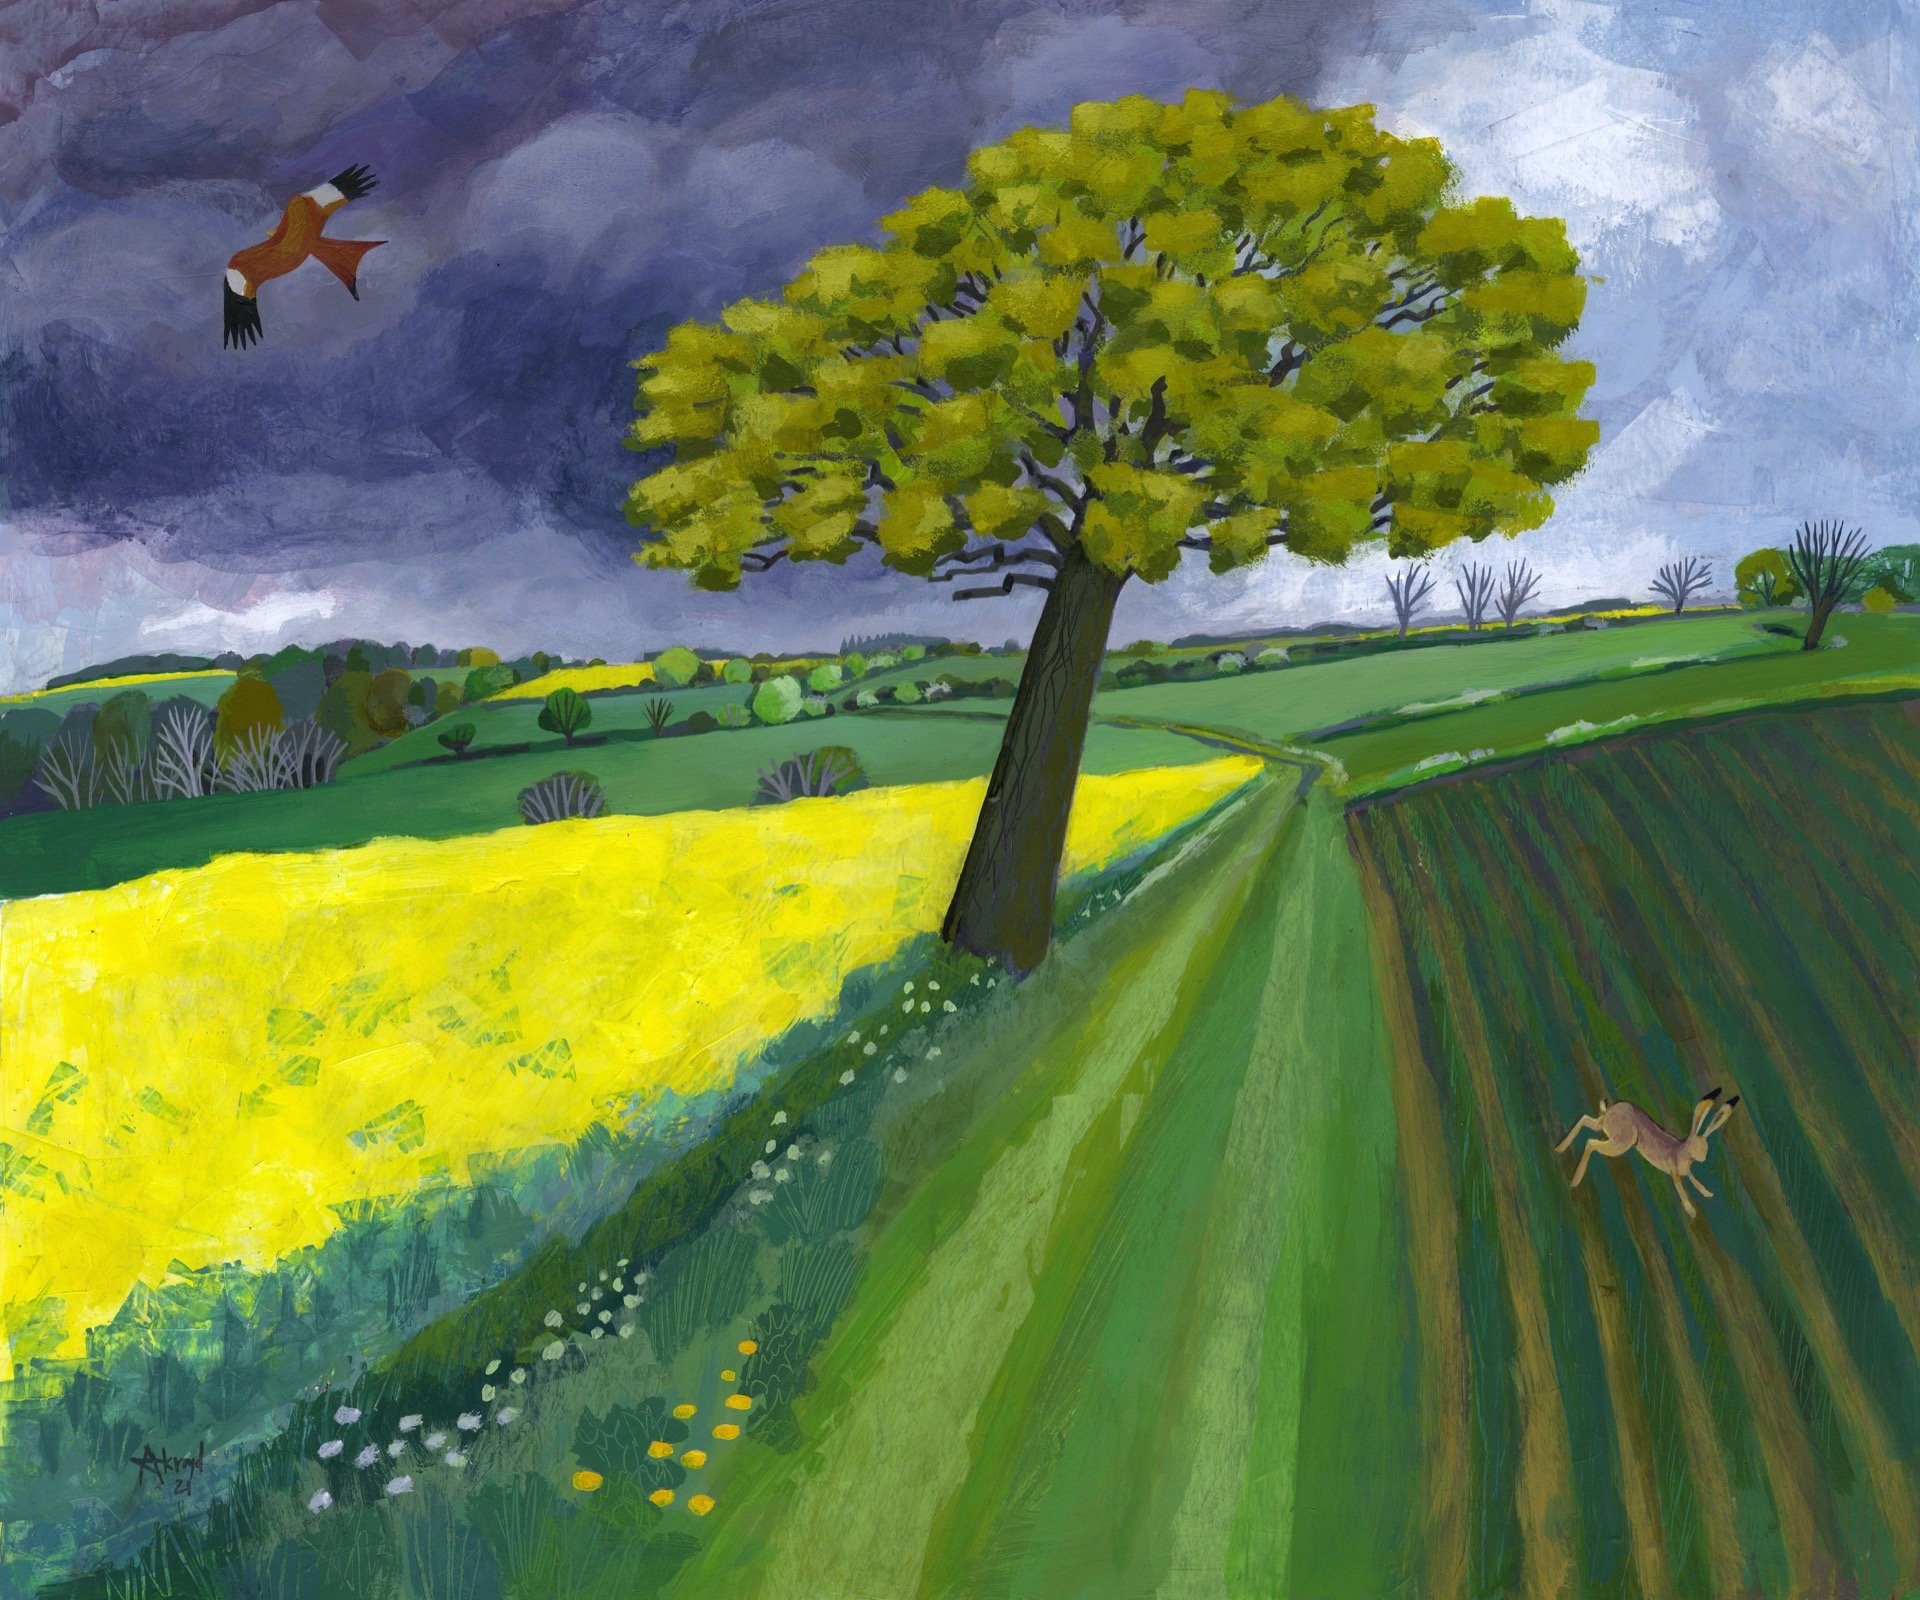 Painting representing a field with a tree in the middle.